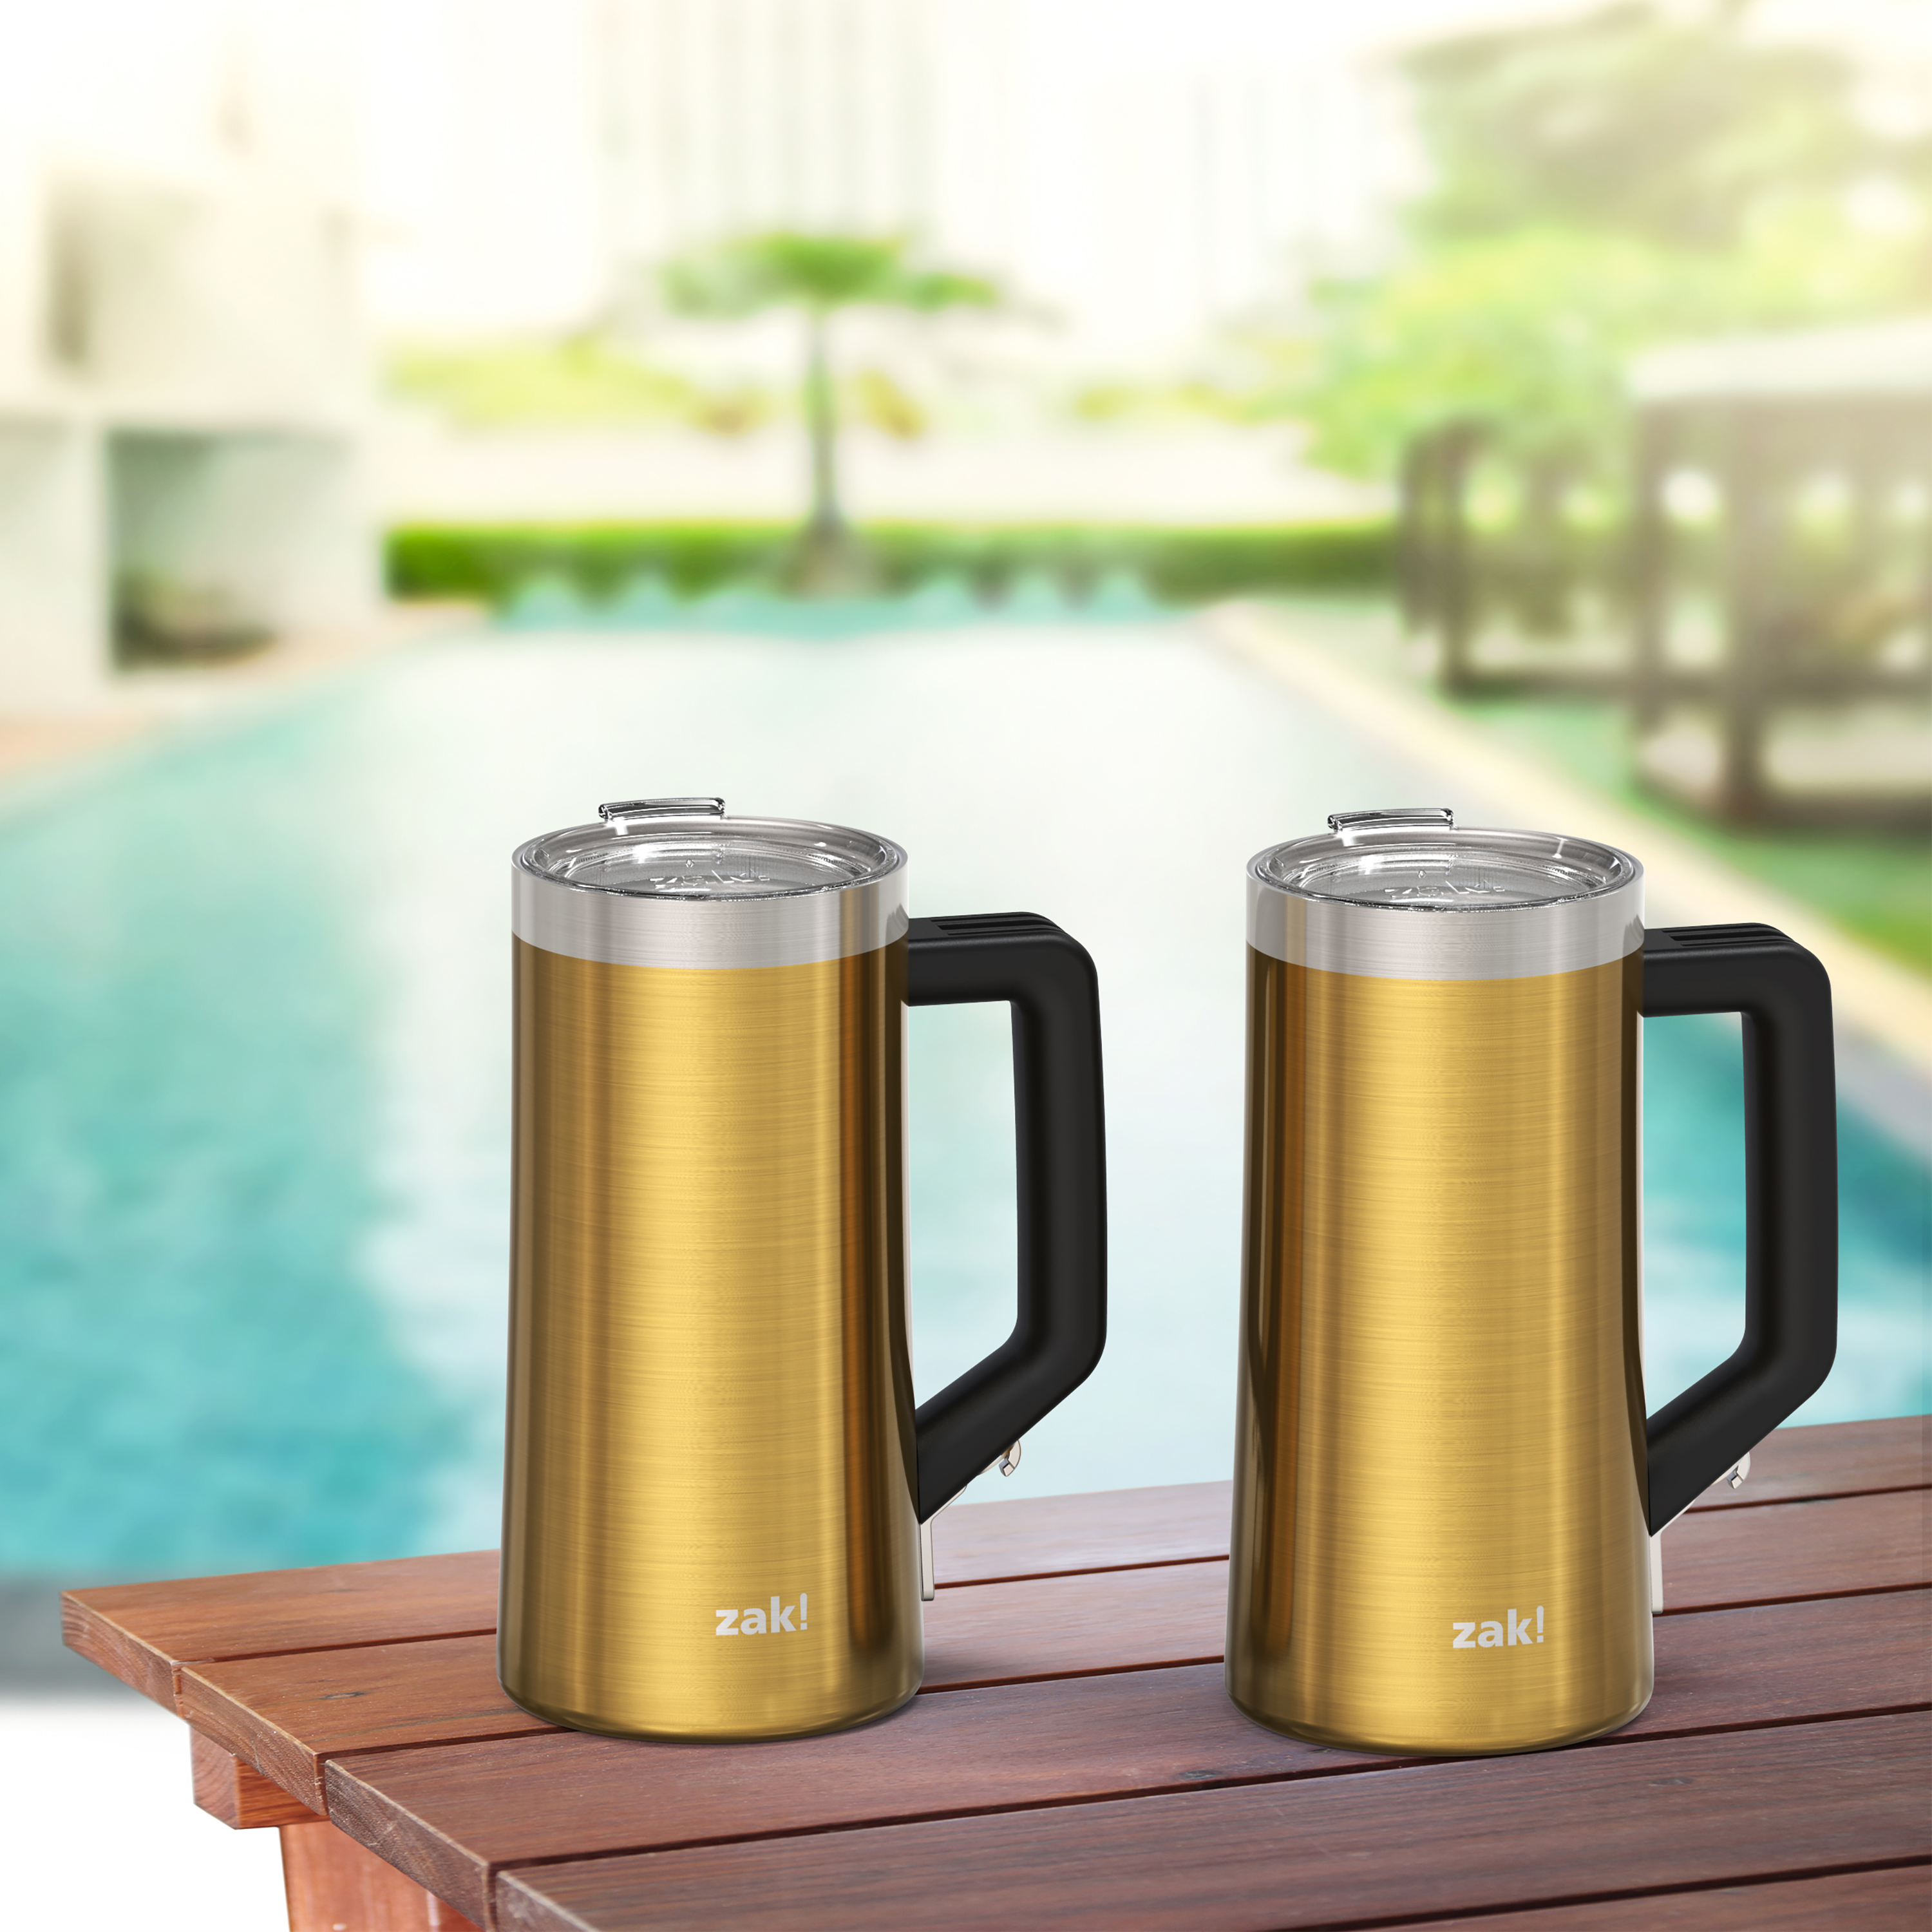 Creston 25 ounce Vacuum Insulated Stainless Steel Tumbler, Gold slideshow image 11